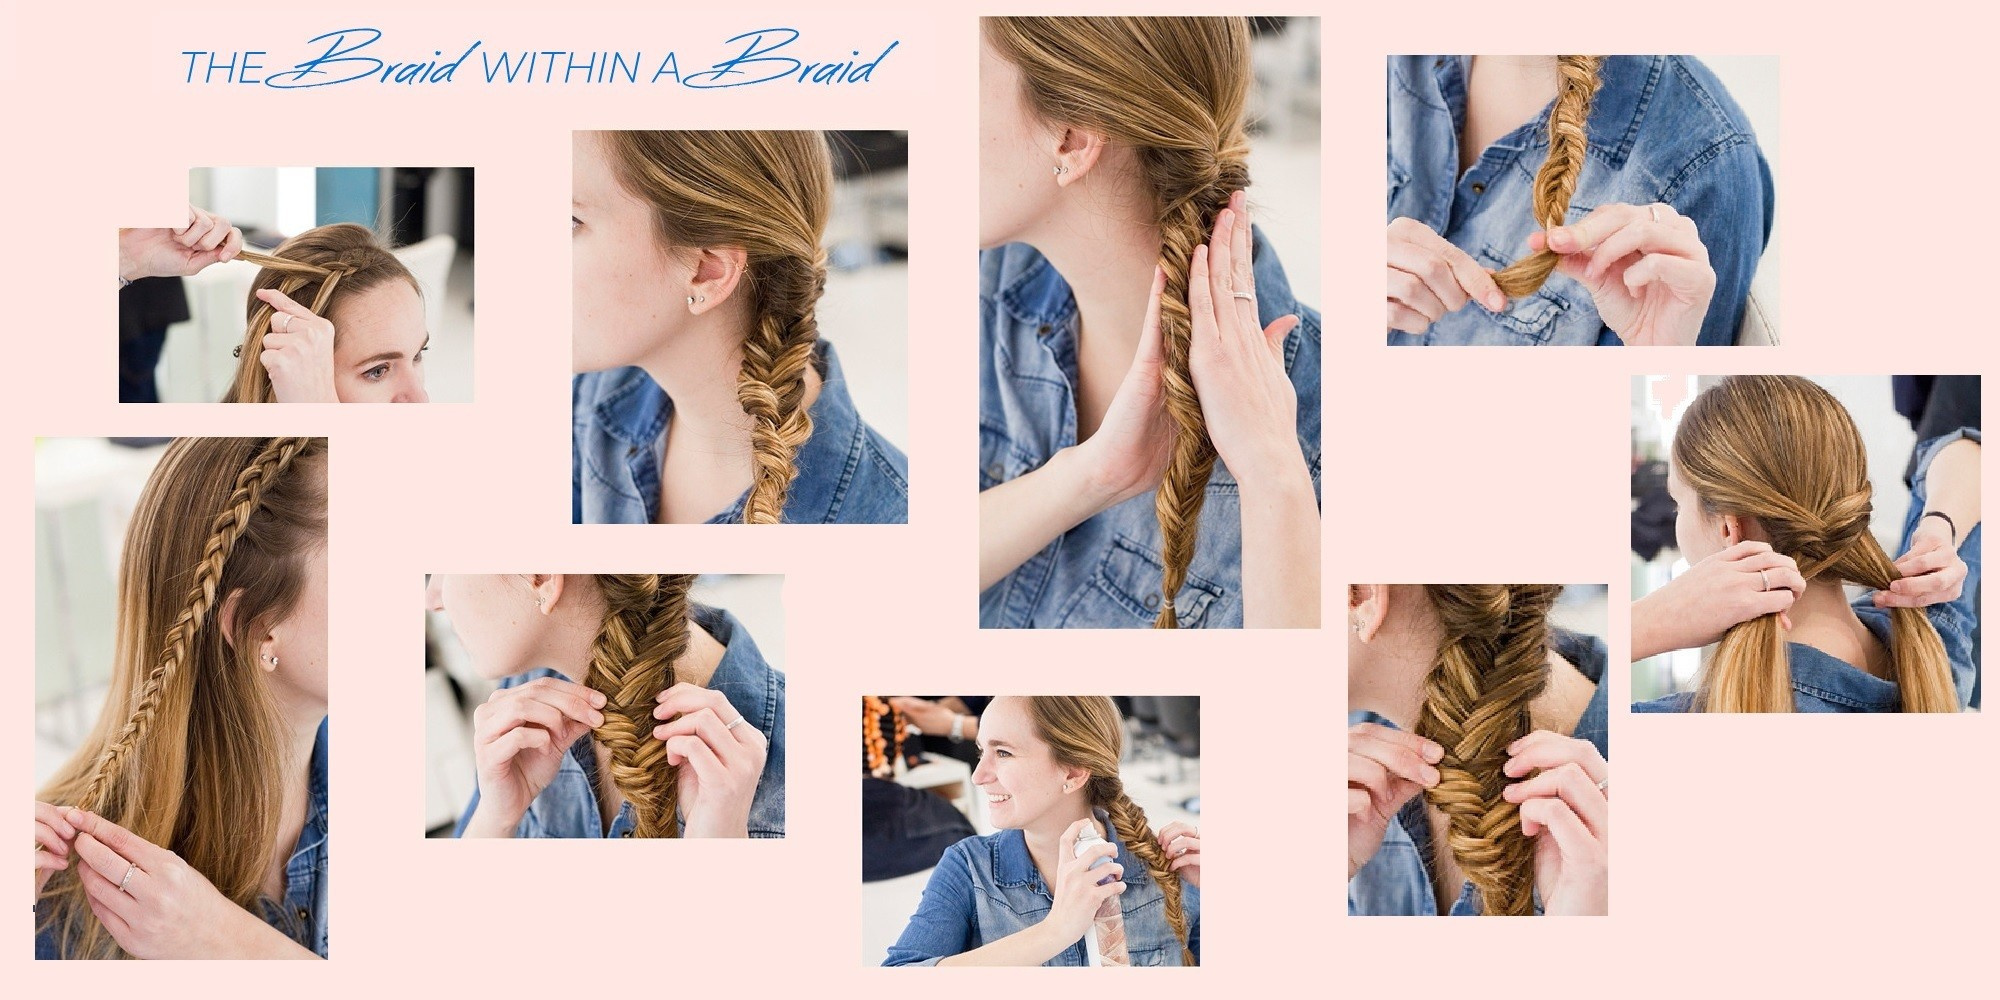 DIY steps for the perfect summer festival hairstyle - braids within a braid.